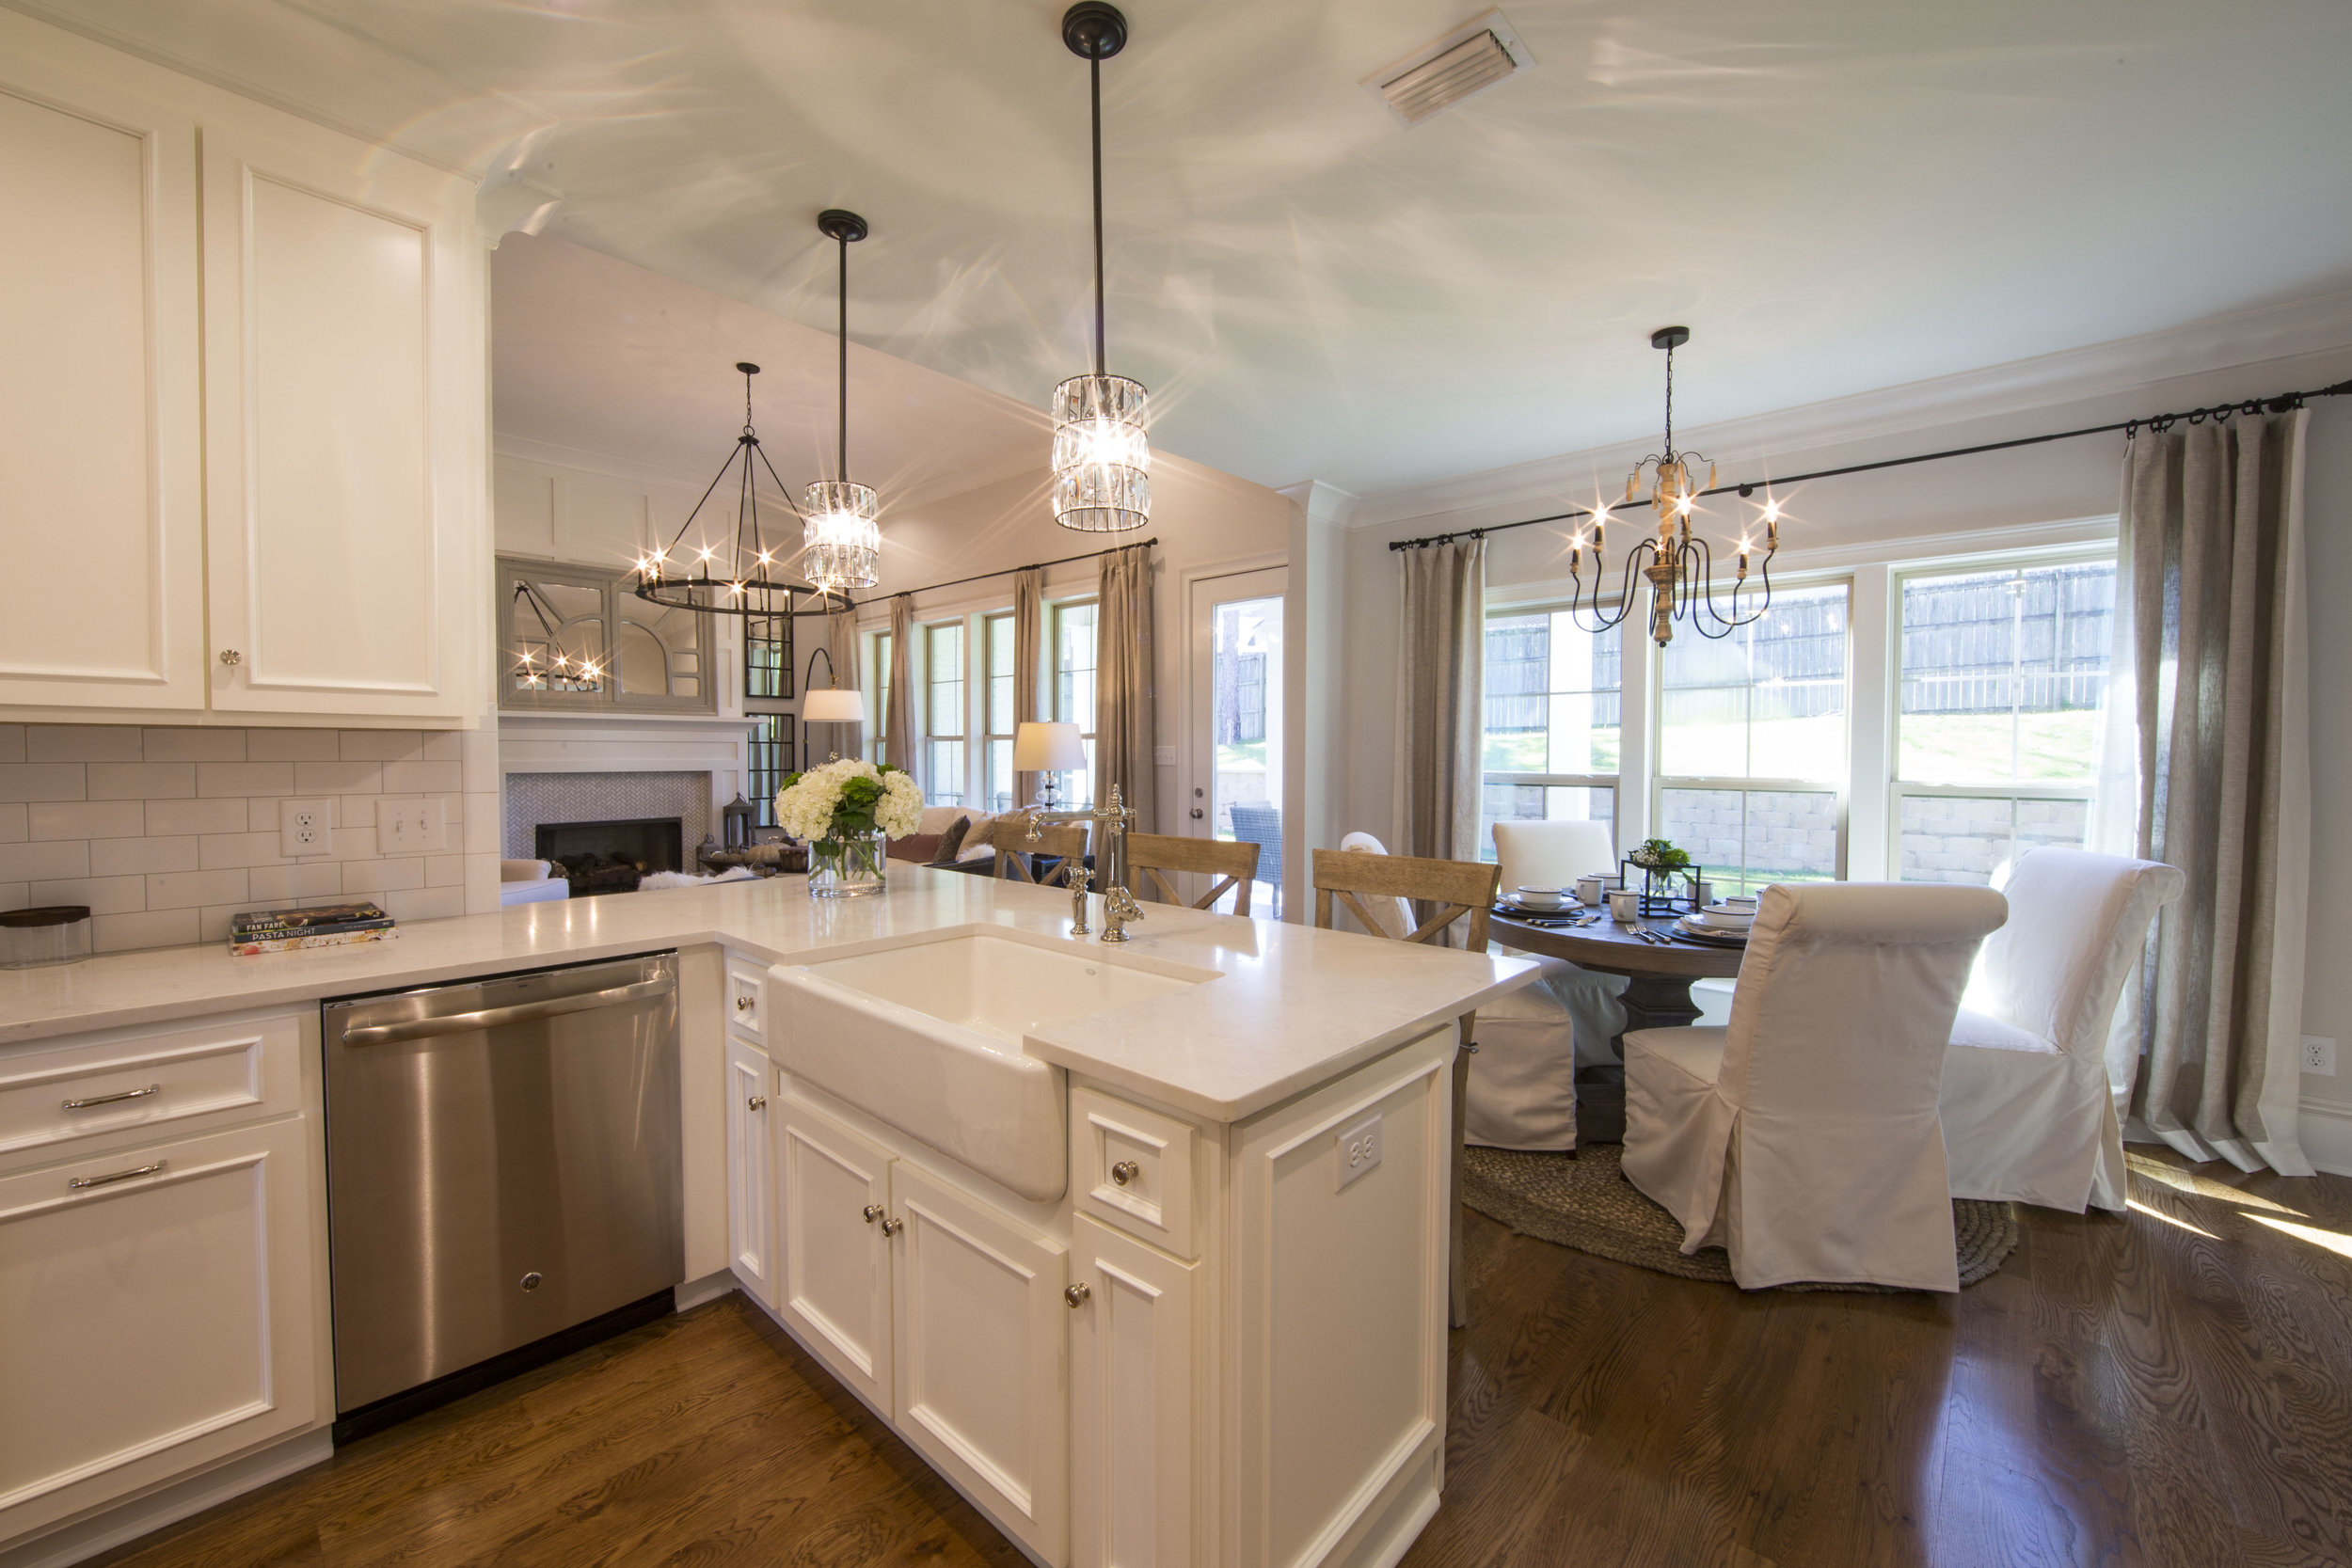 Wynnfield Court Parade of Homes 0r7a7012.jpg